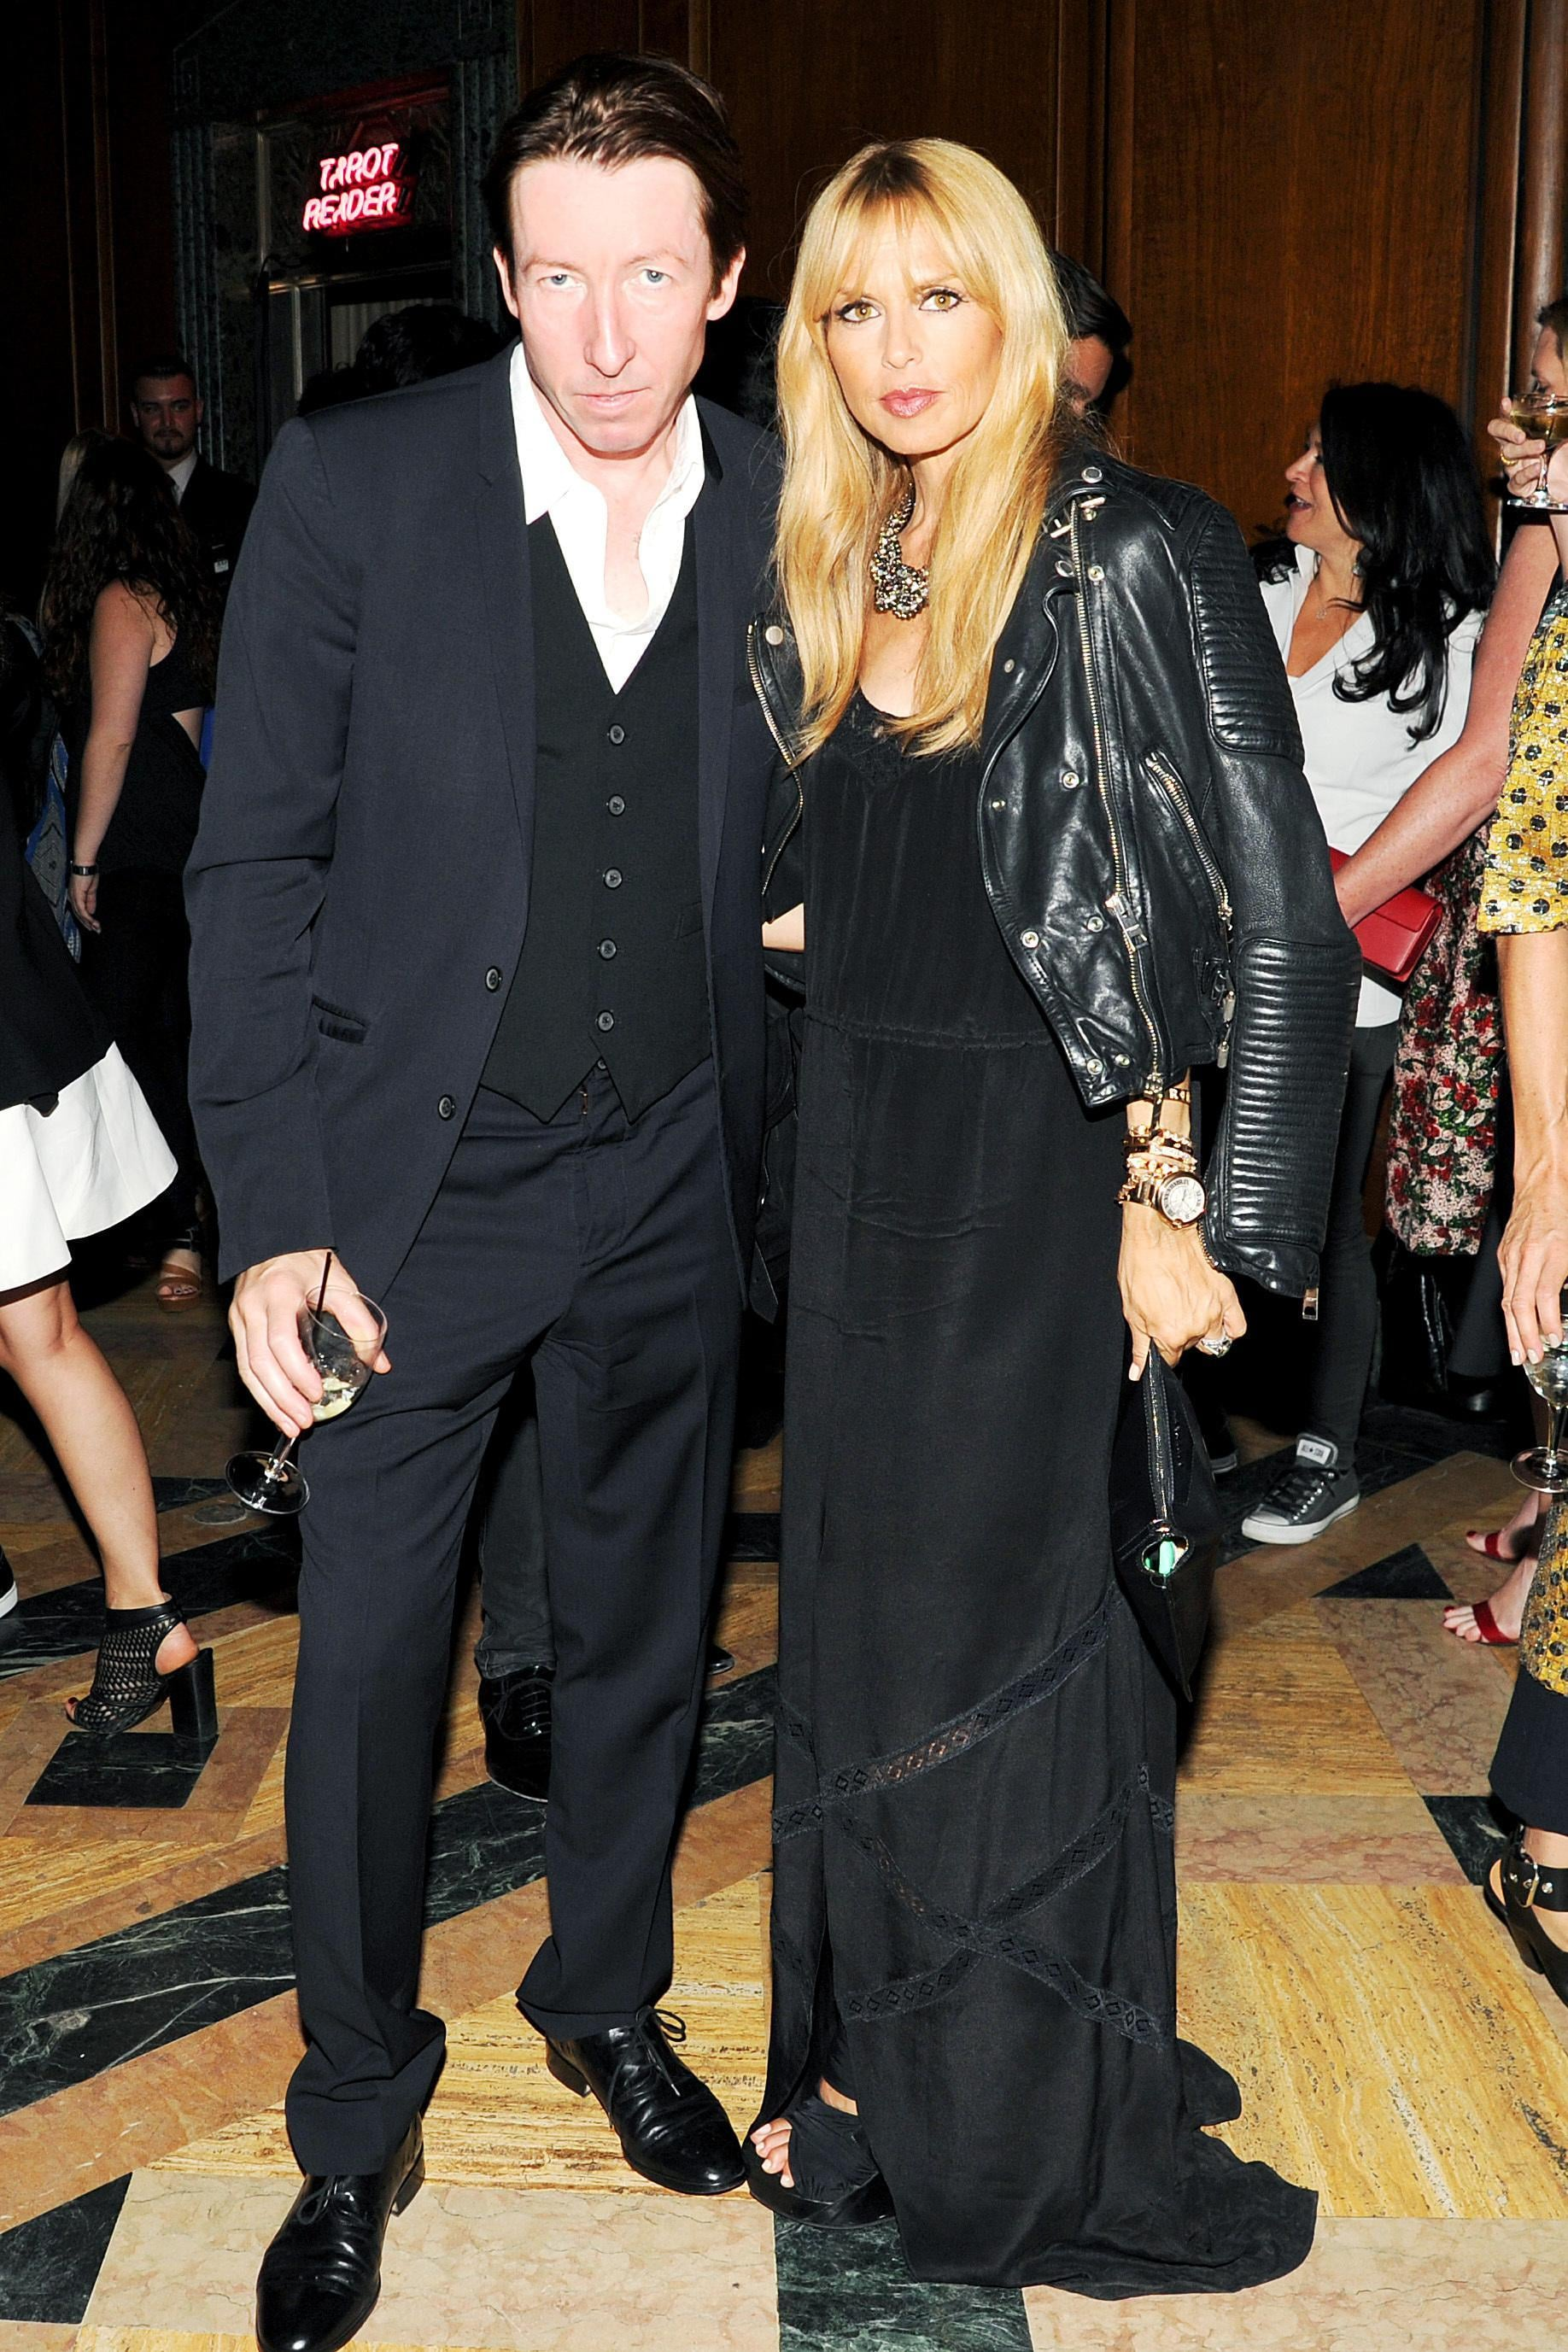 Rachel Zoe mingled with photographer Craig McDean. Source: Jason Merritt/BFAnyc.com